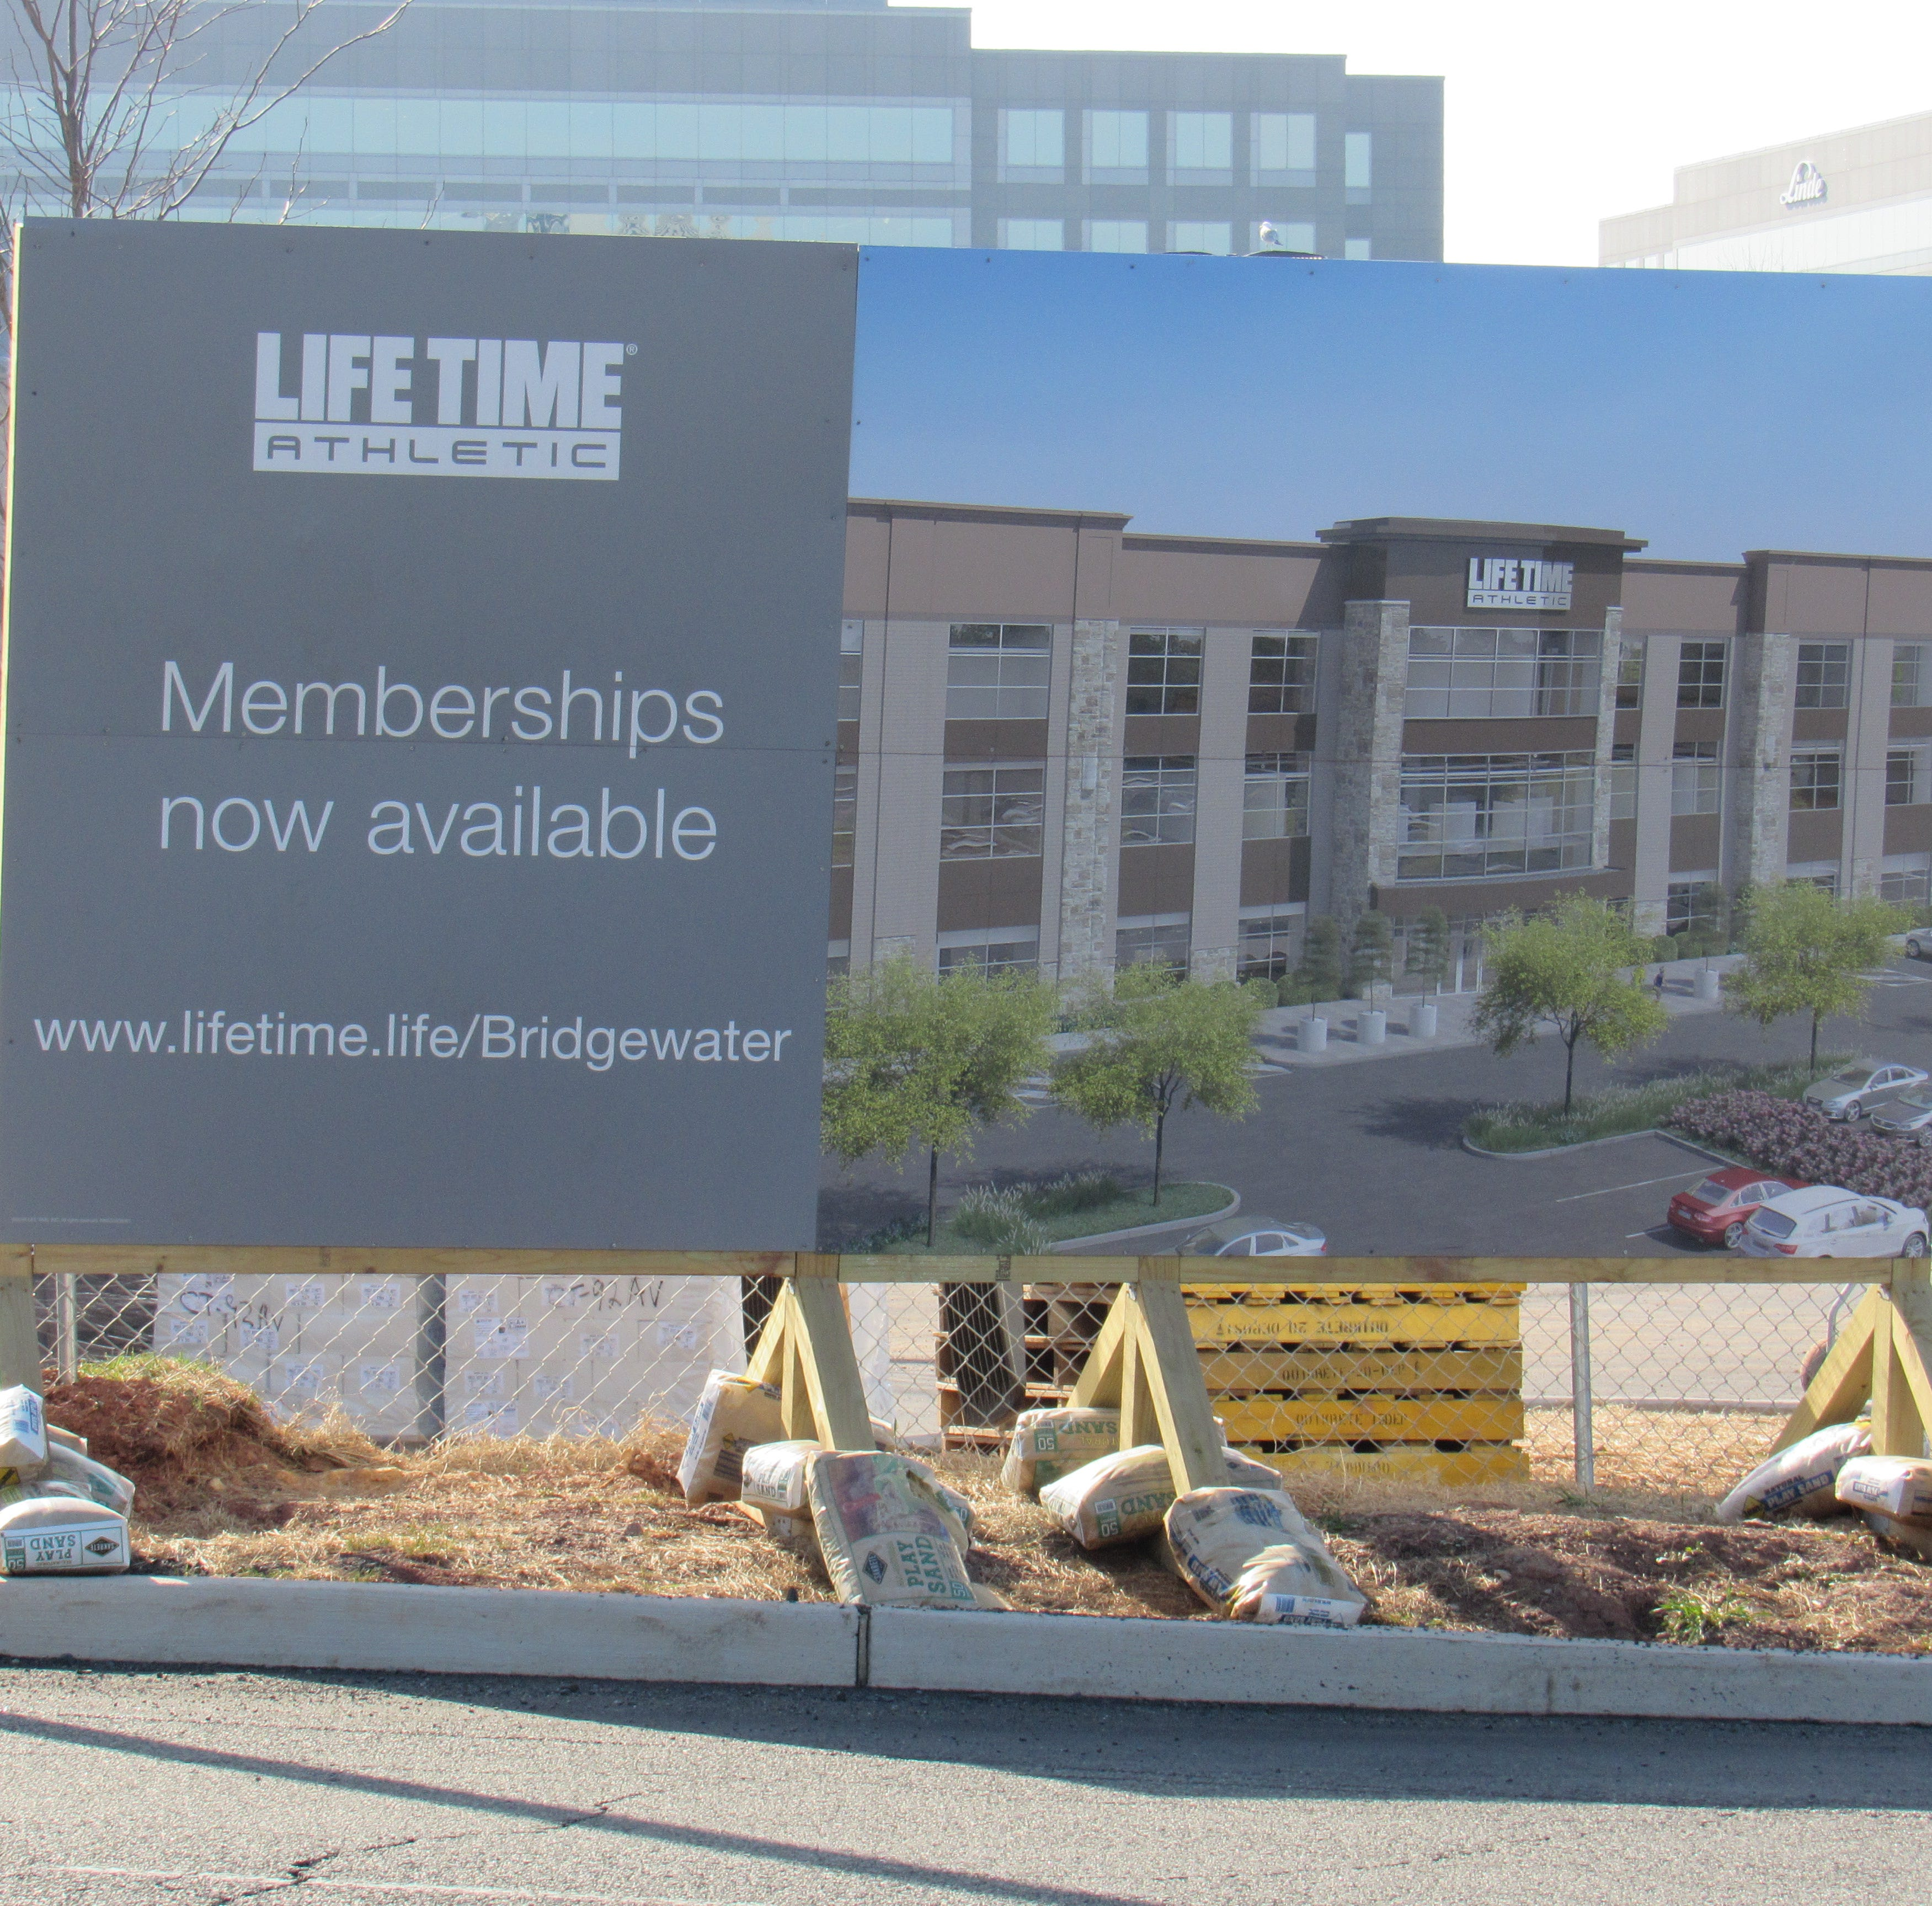 Bridgewater: Life Time fitness center looks to hire 400 employees